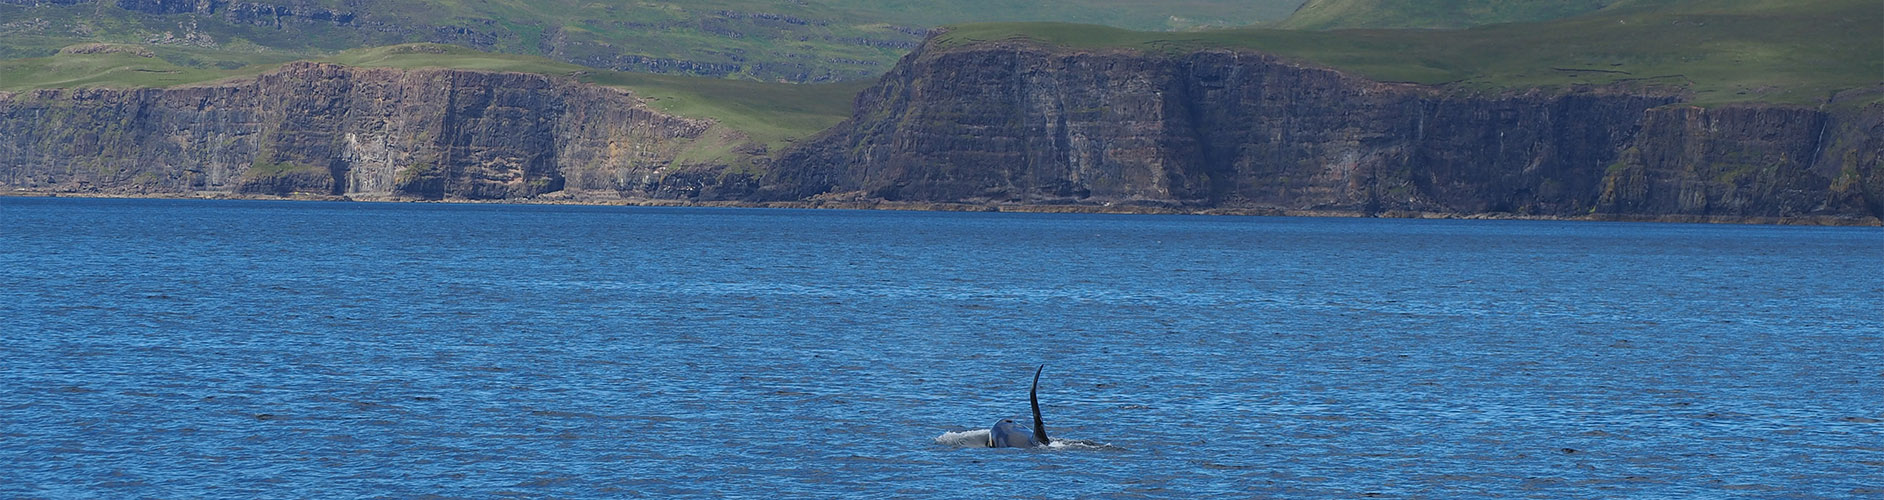 Orca Whale | Killer Whale | Scottish Wildlife | Scottish Cruises